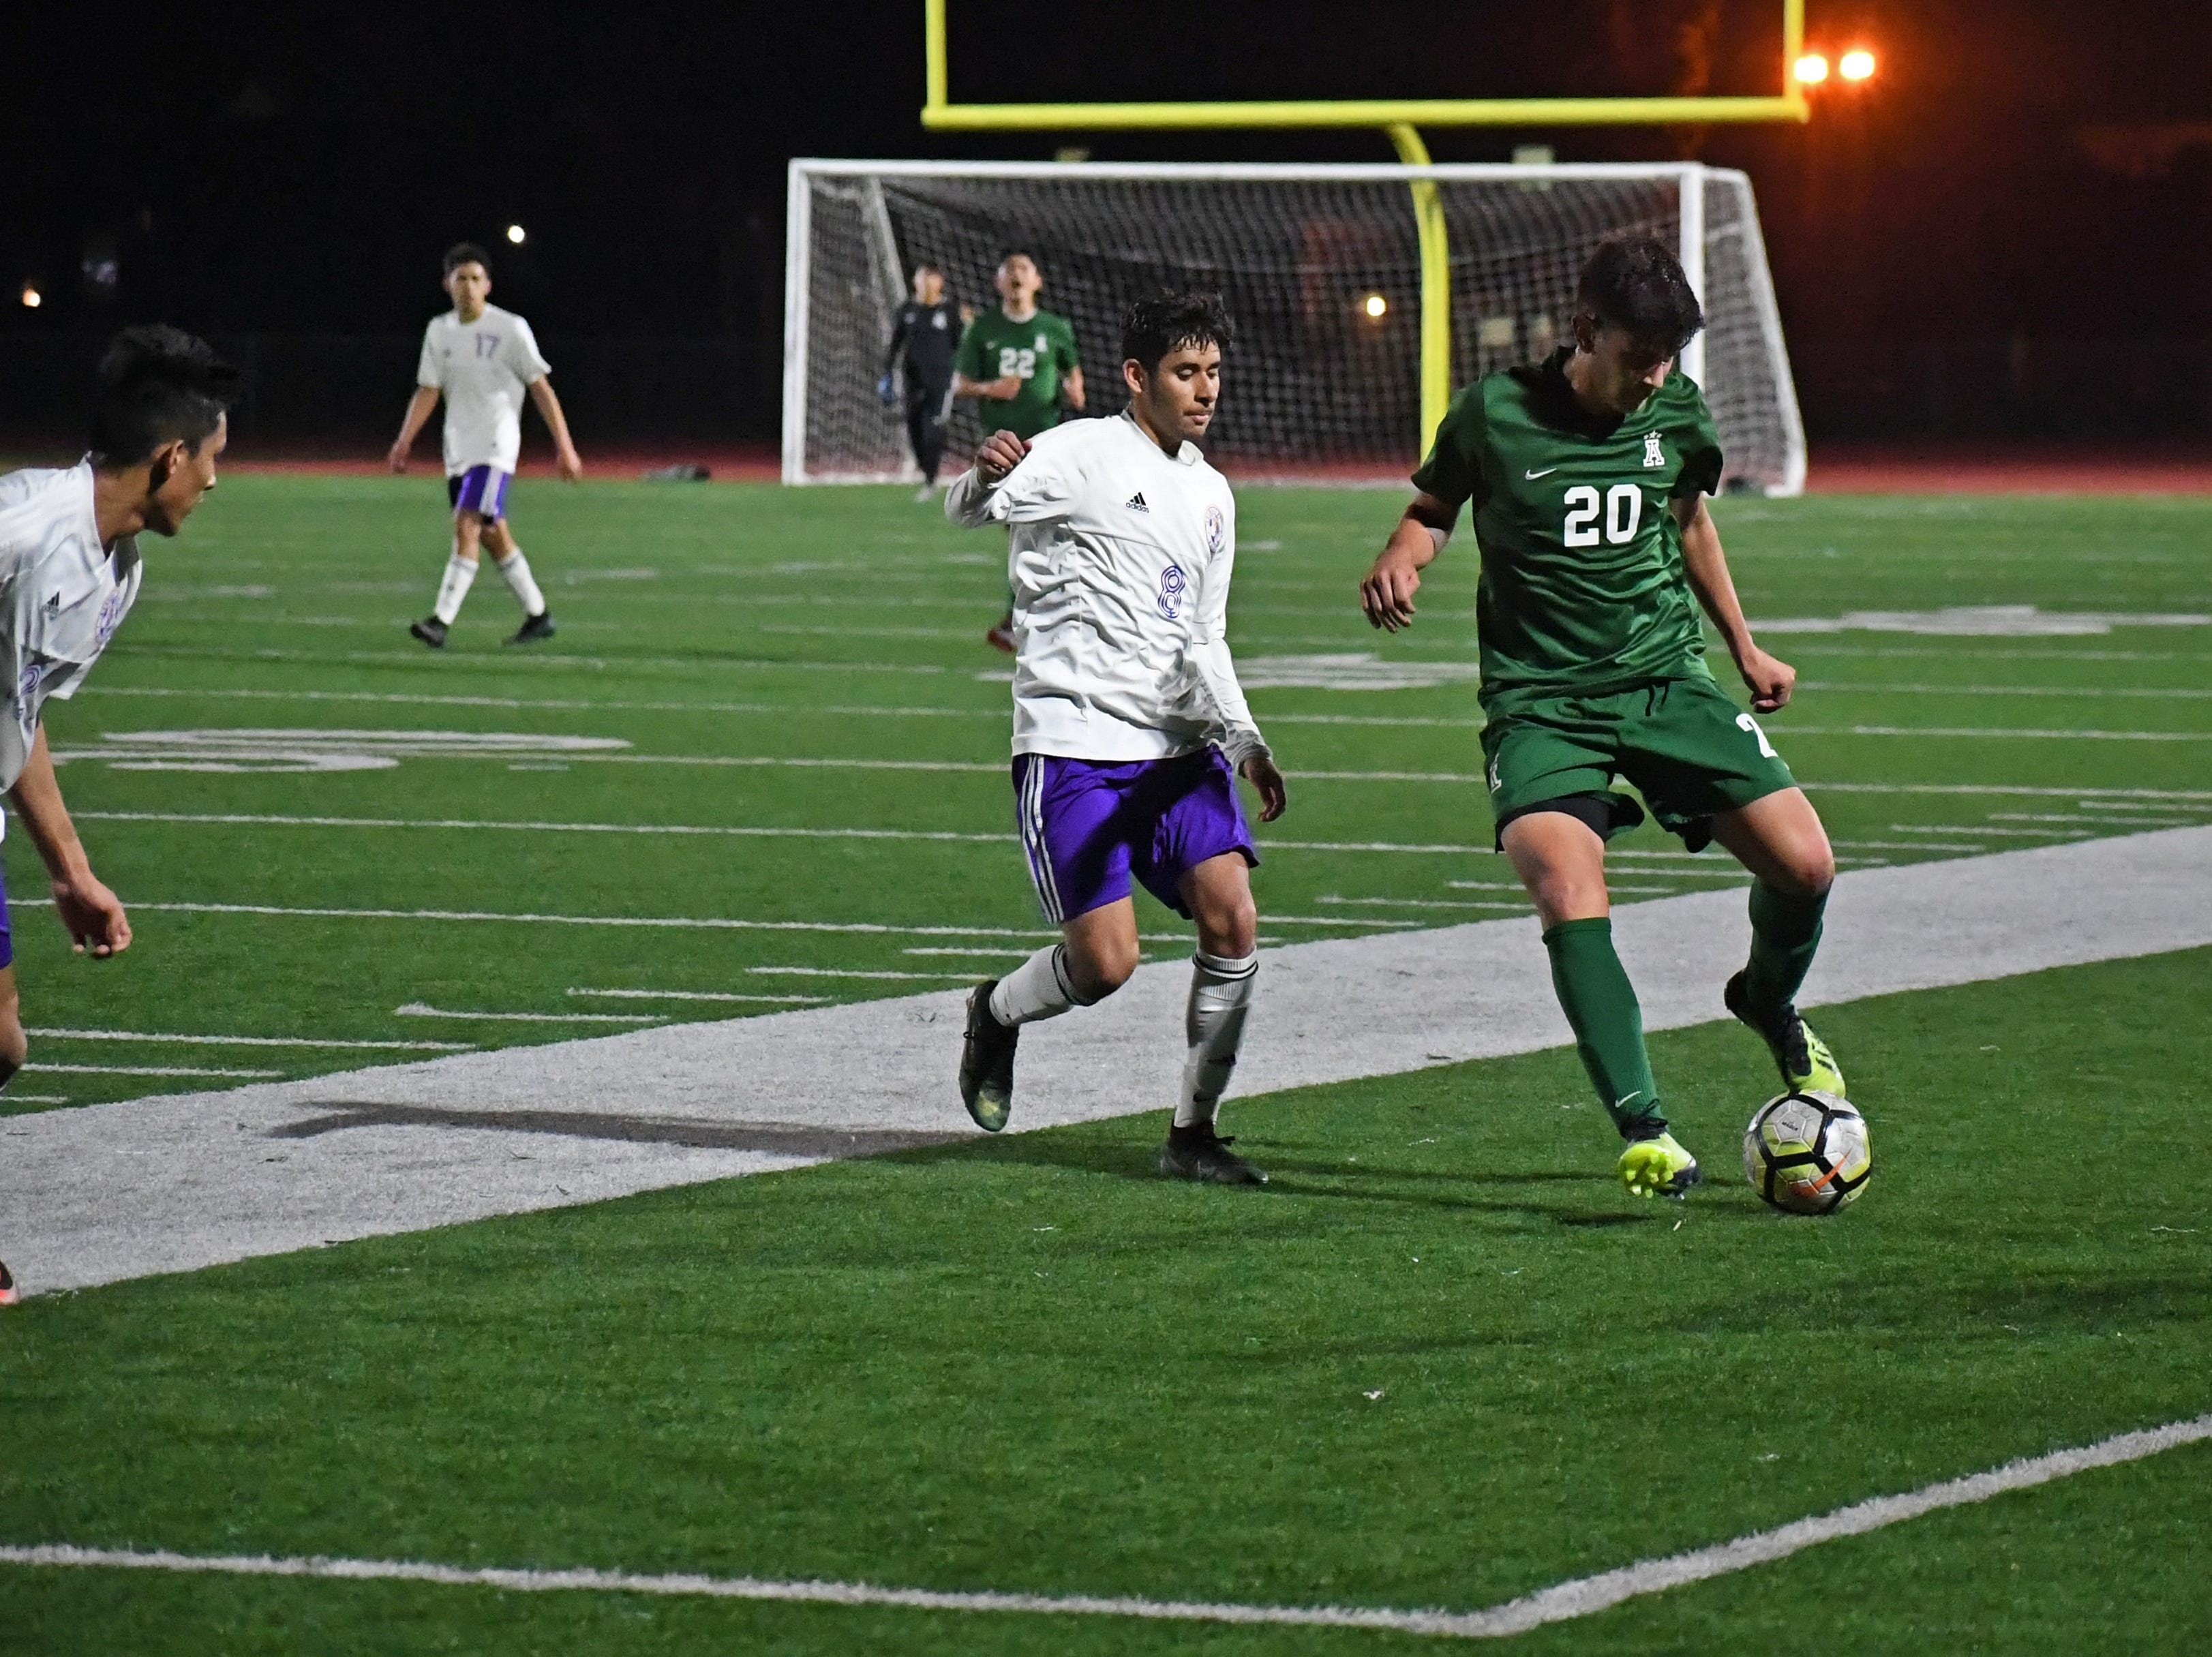 Alisal midfielder Abraham Montaño (20) keeps possession along the sideline.